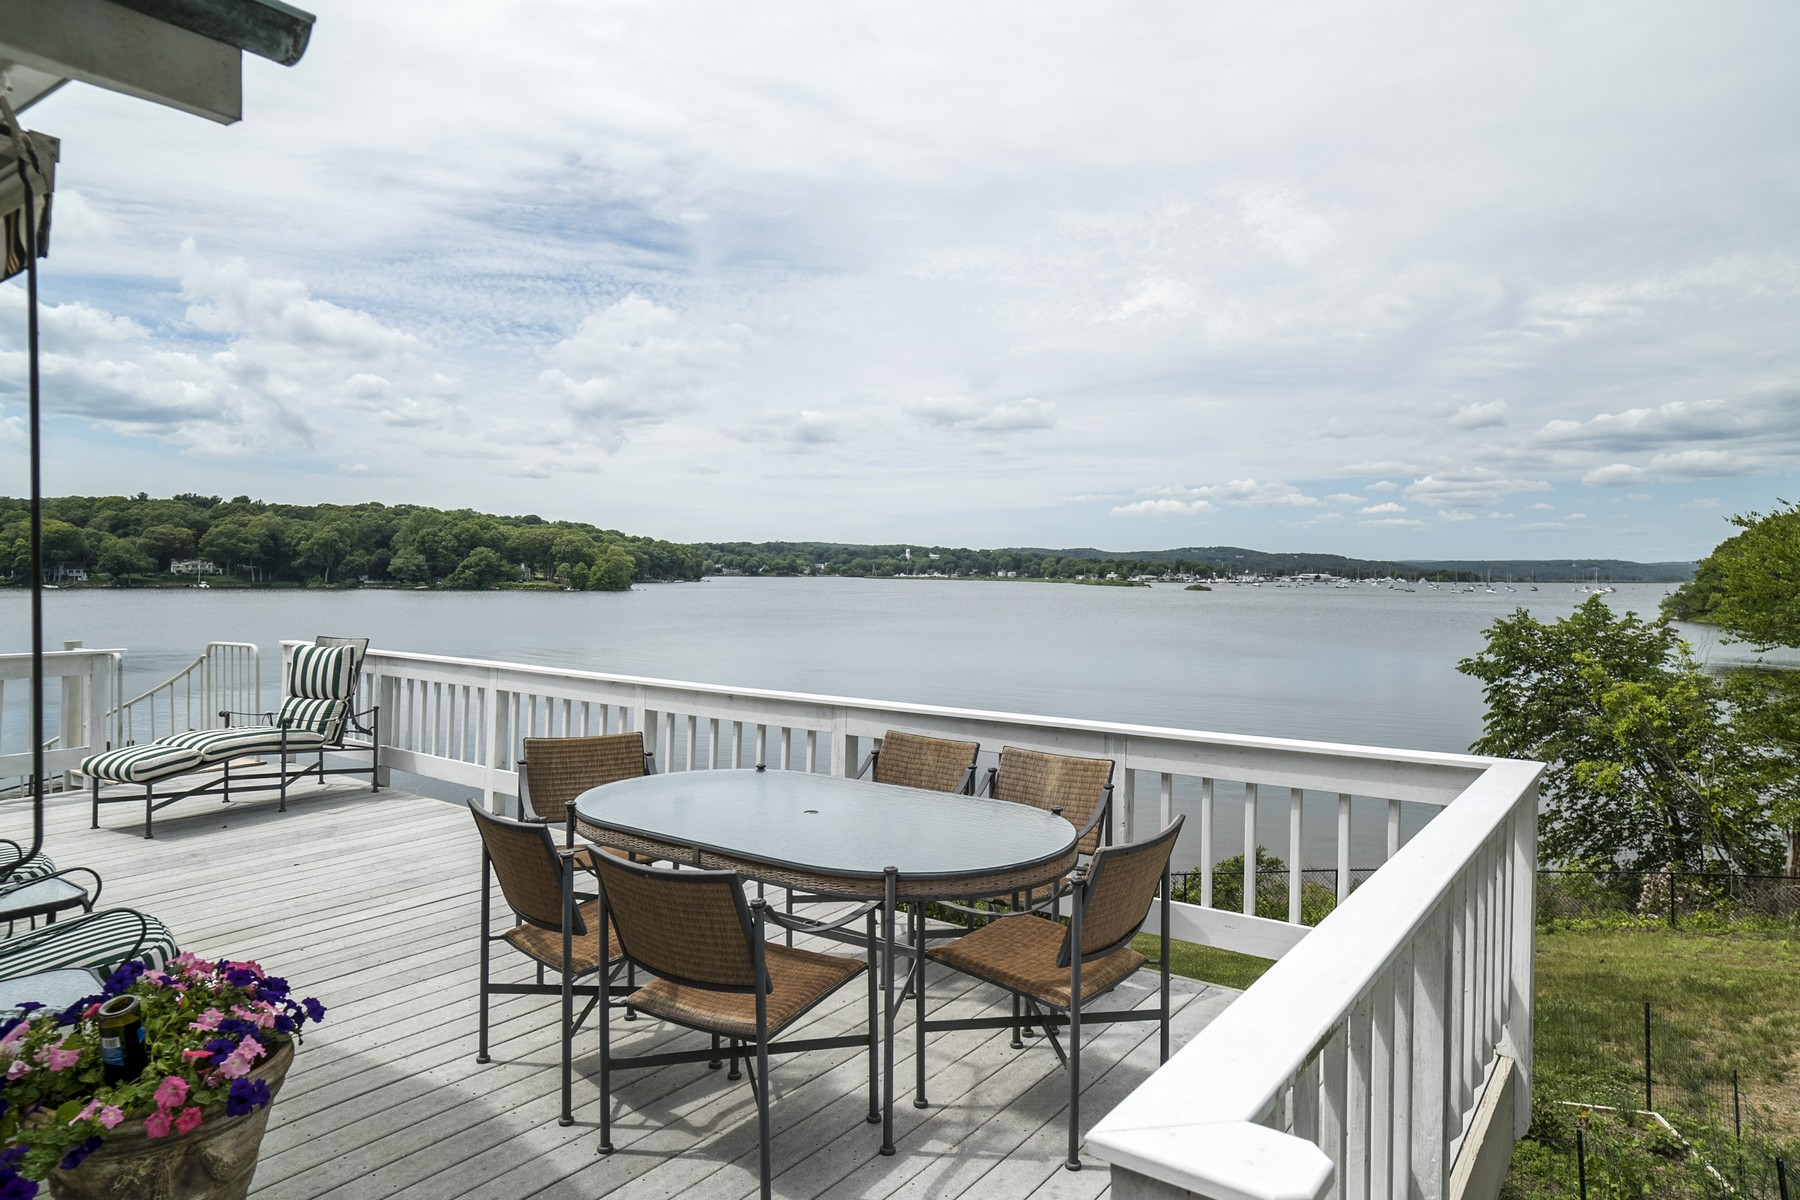 Maison unifamiliale pour l Vente à Awe-Inspiring, Jaw Dropping Views! 32 Hemlock Dr Essex, Connecticut 06426 États-Unis